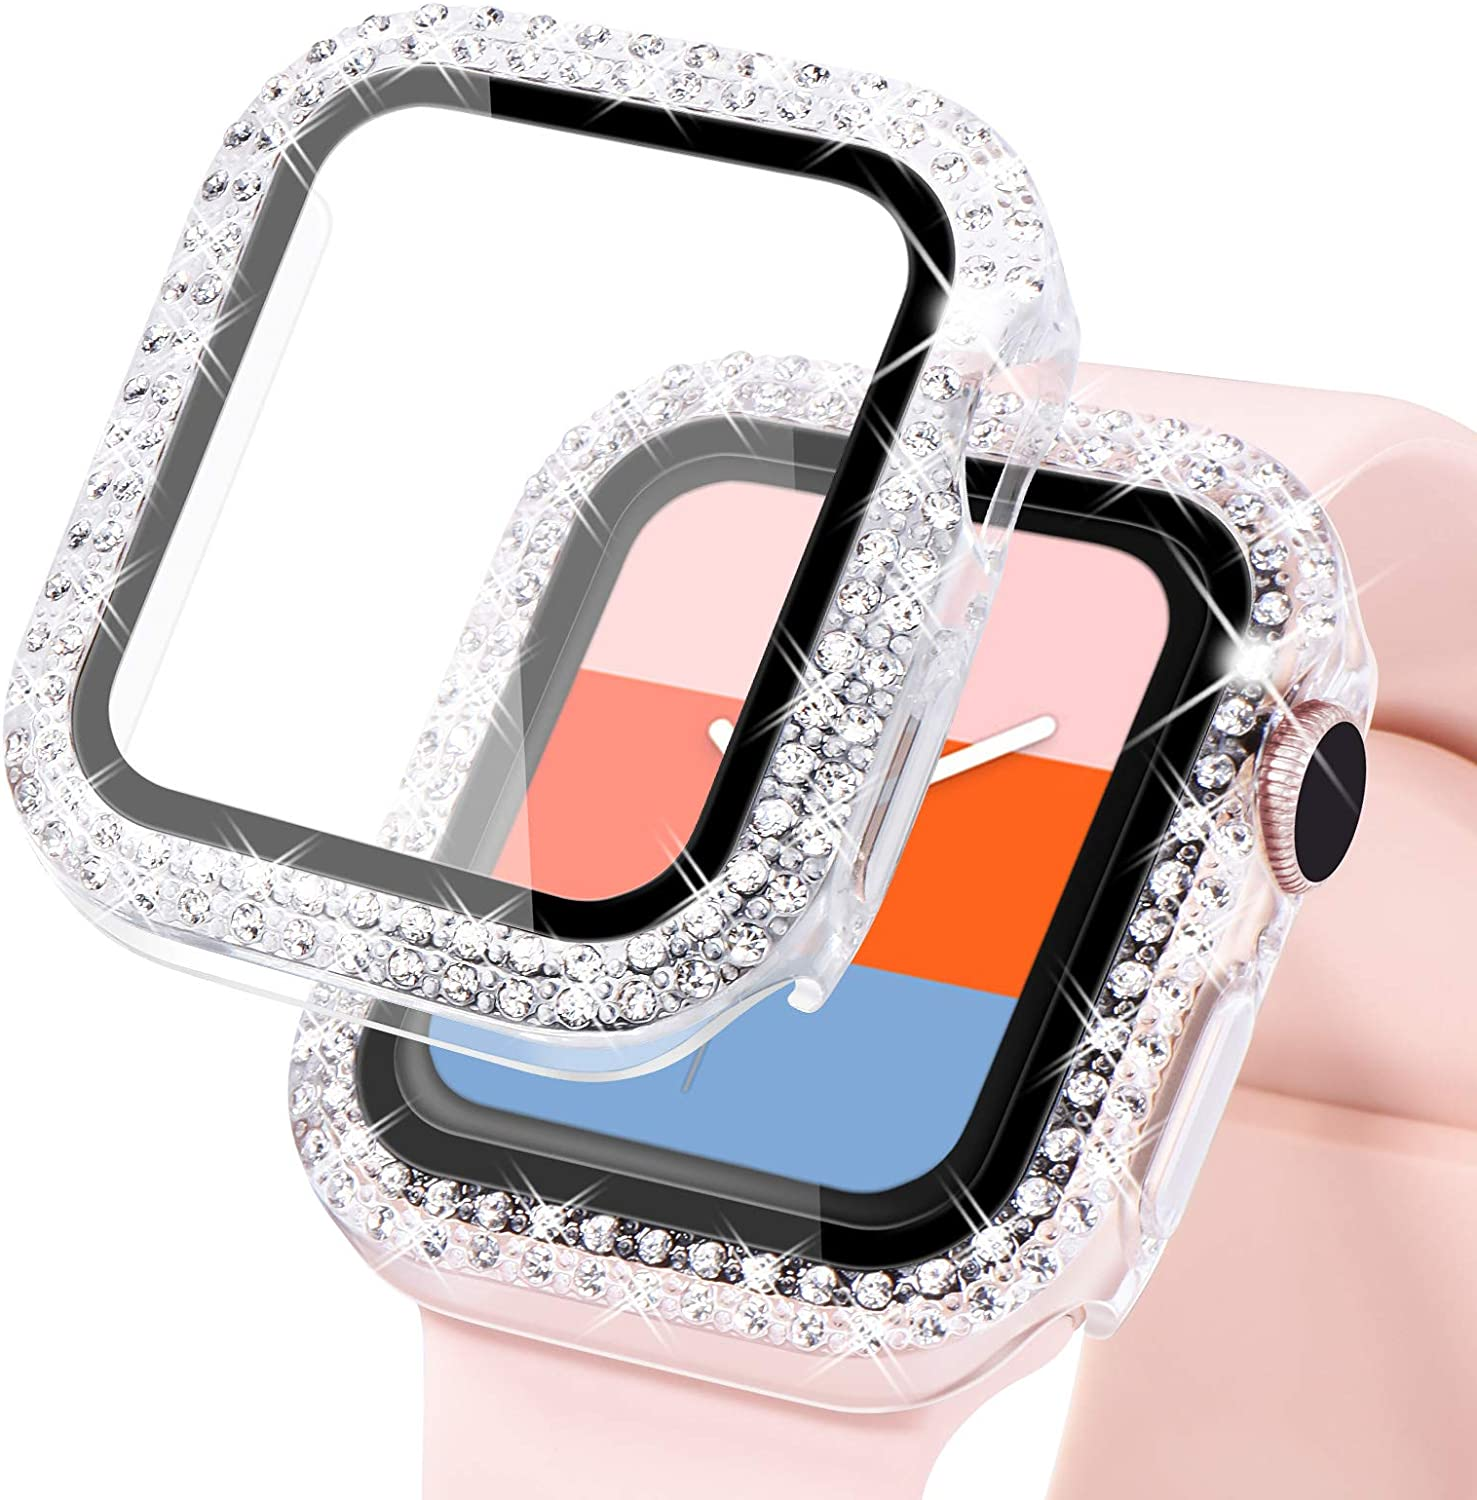 KADES Compatible for Bling Apple Watch Protective Case with Built-in Screen Protector for Apple Watch 38mm 40mm 42mm 44mm iWatch SE Series 6 5 4 3 2 1 (44mm, Clear)